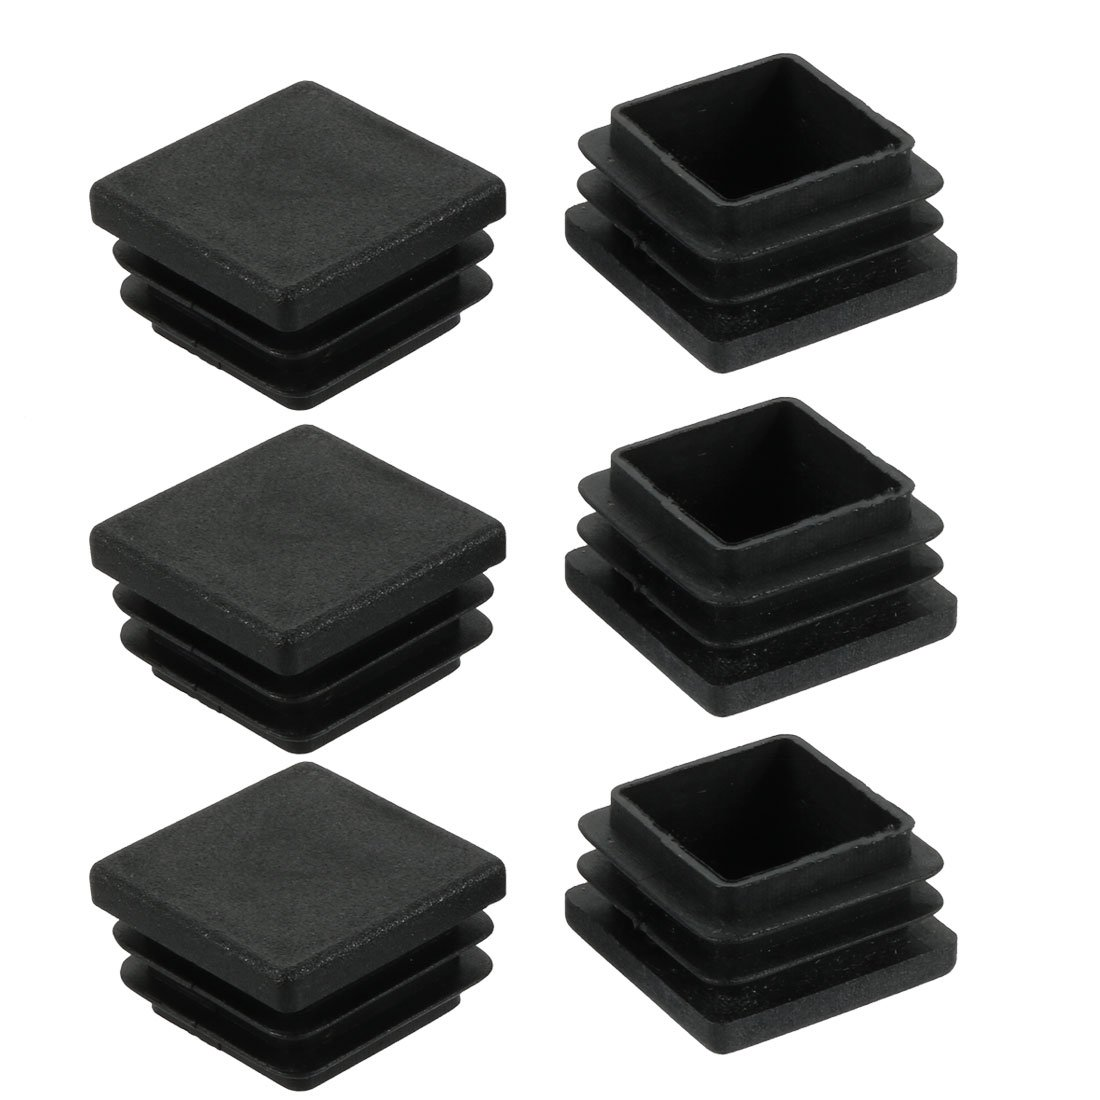 sourcingmap 6pcs Furniture Legs Protector Plastic Square Tube Inserts Cap Black 28mm x 28mm a17112700ux1280